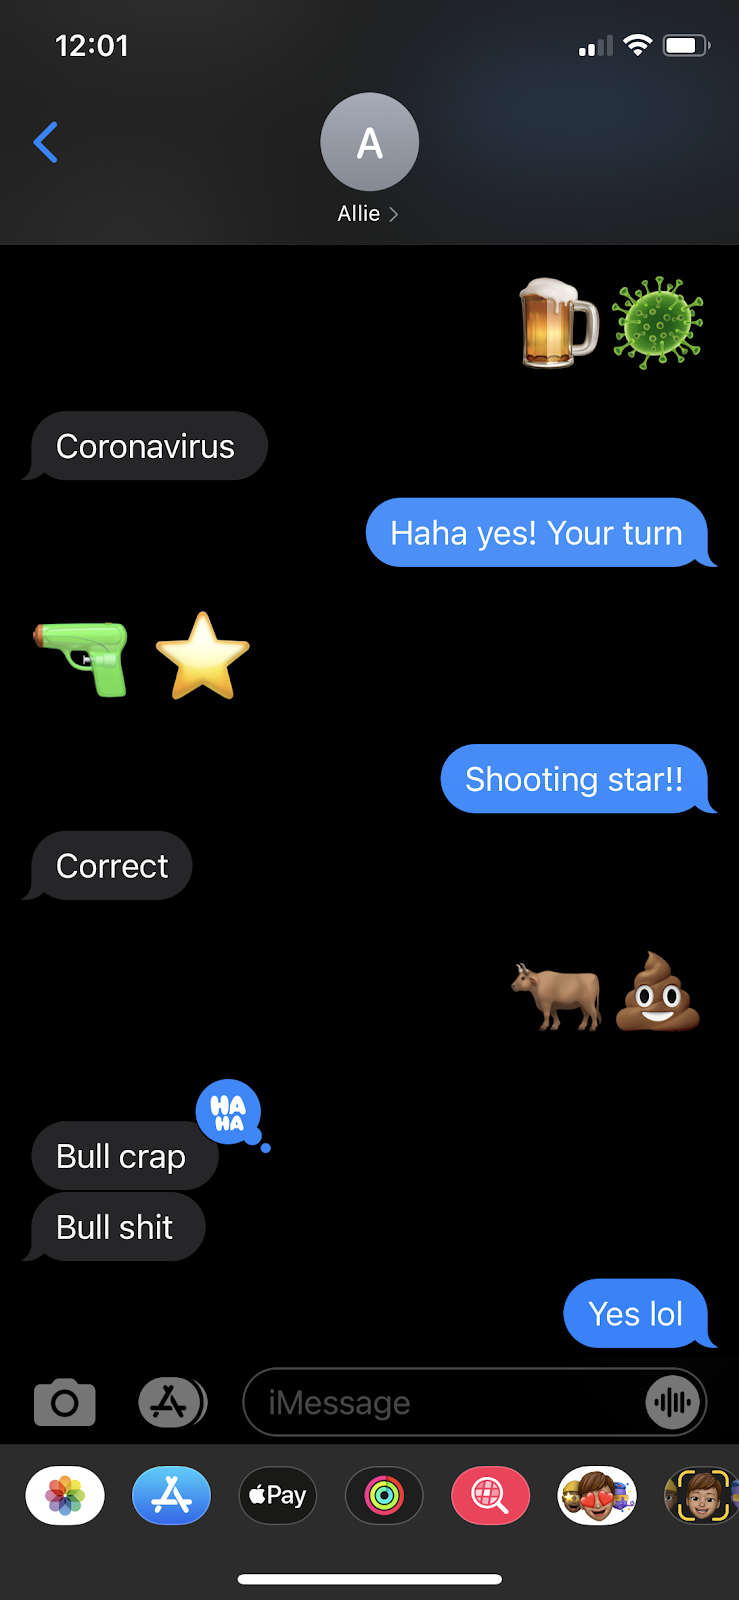 best texting games, image of people using emoji over text to guess what people are sayin